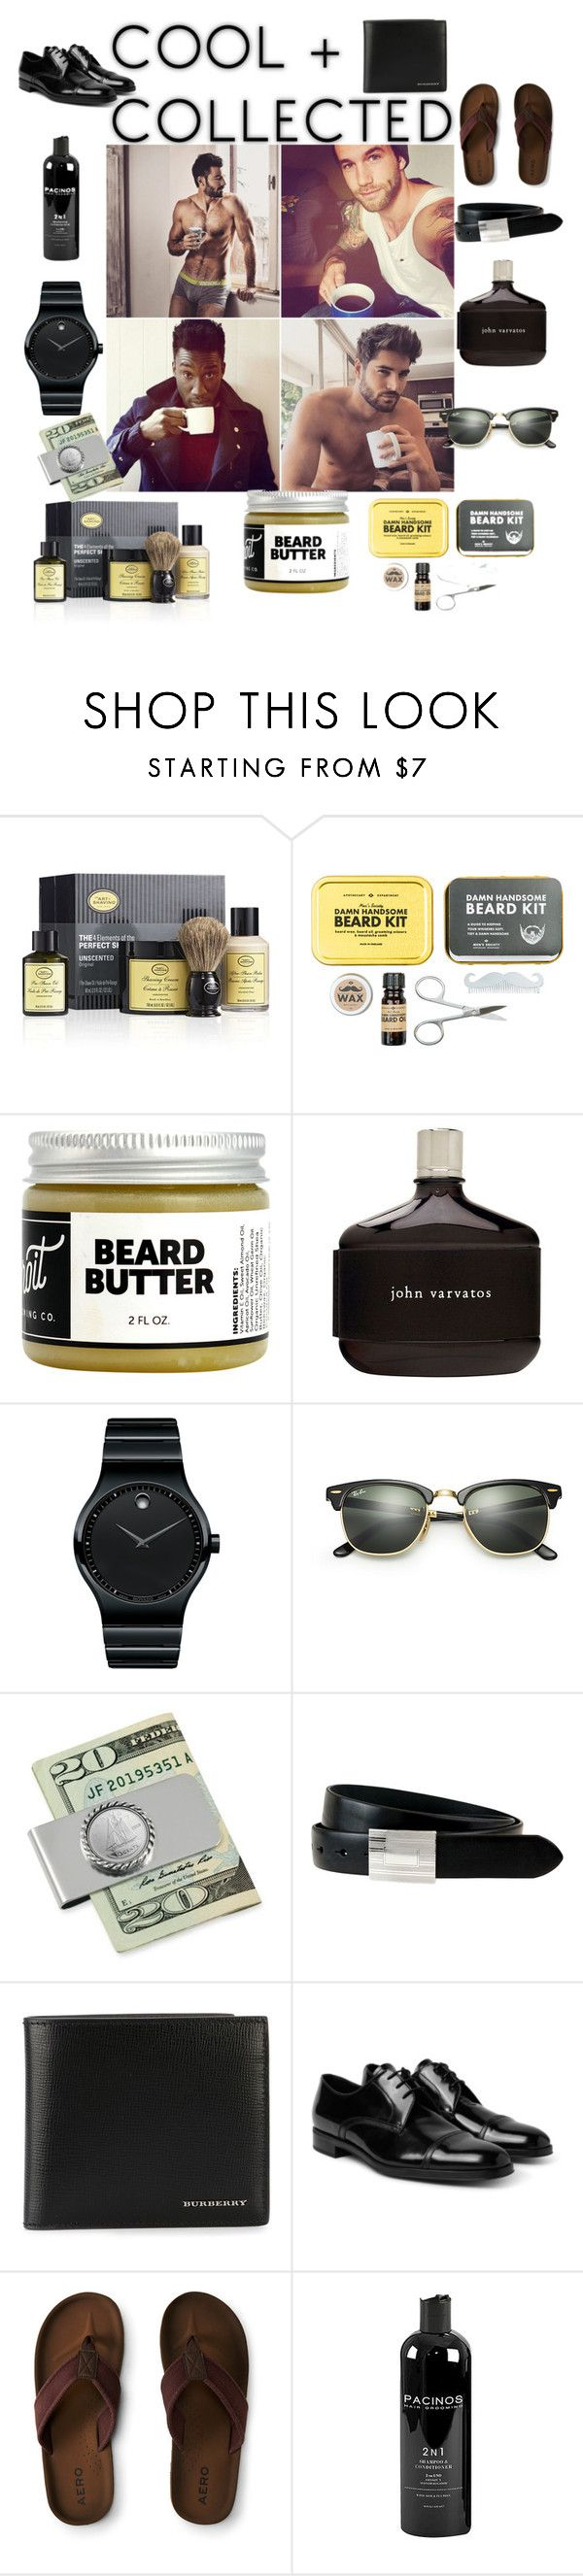 """""""Cool & Colllected"""" by aasisterstouch ❤ liked on Polyvore featuring The Art of Shaving, Men's Society, Detroit Grooming Co., John Varvatos, Movado, Ray-Ban, American Coin Treasures, The British Belt Company, Burberry and Prada"""